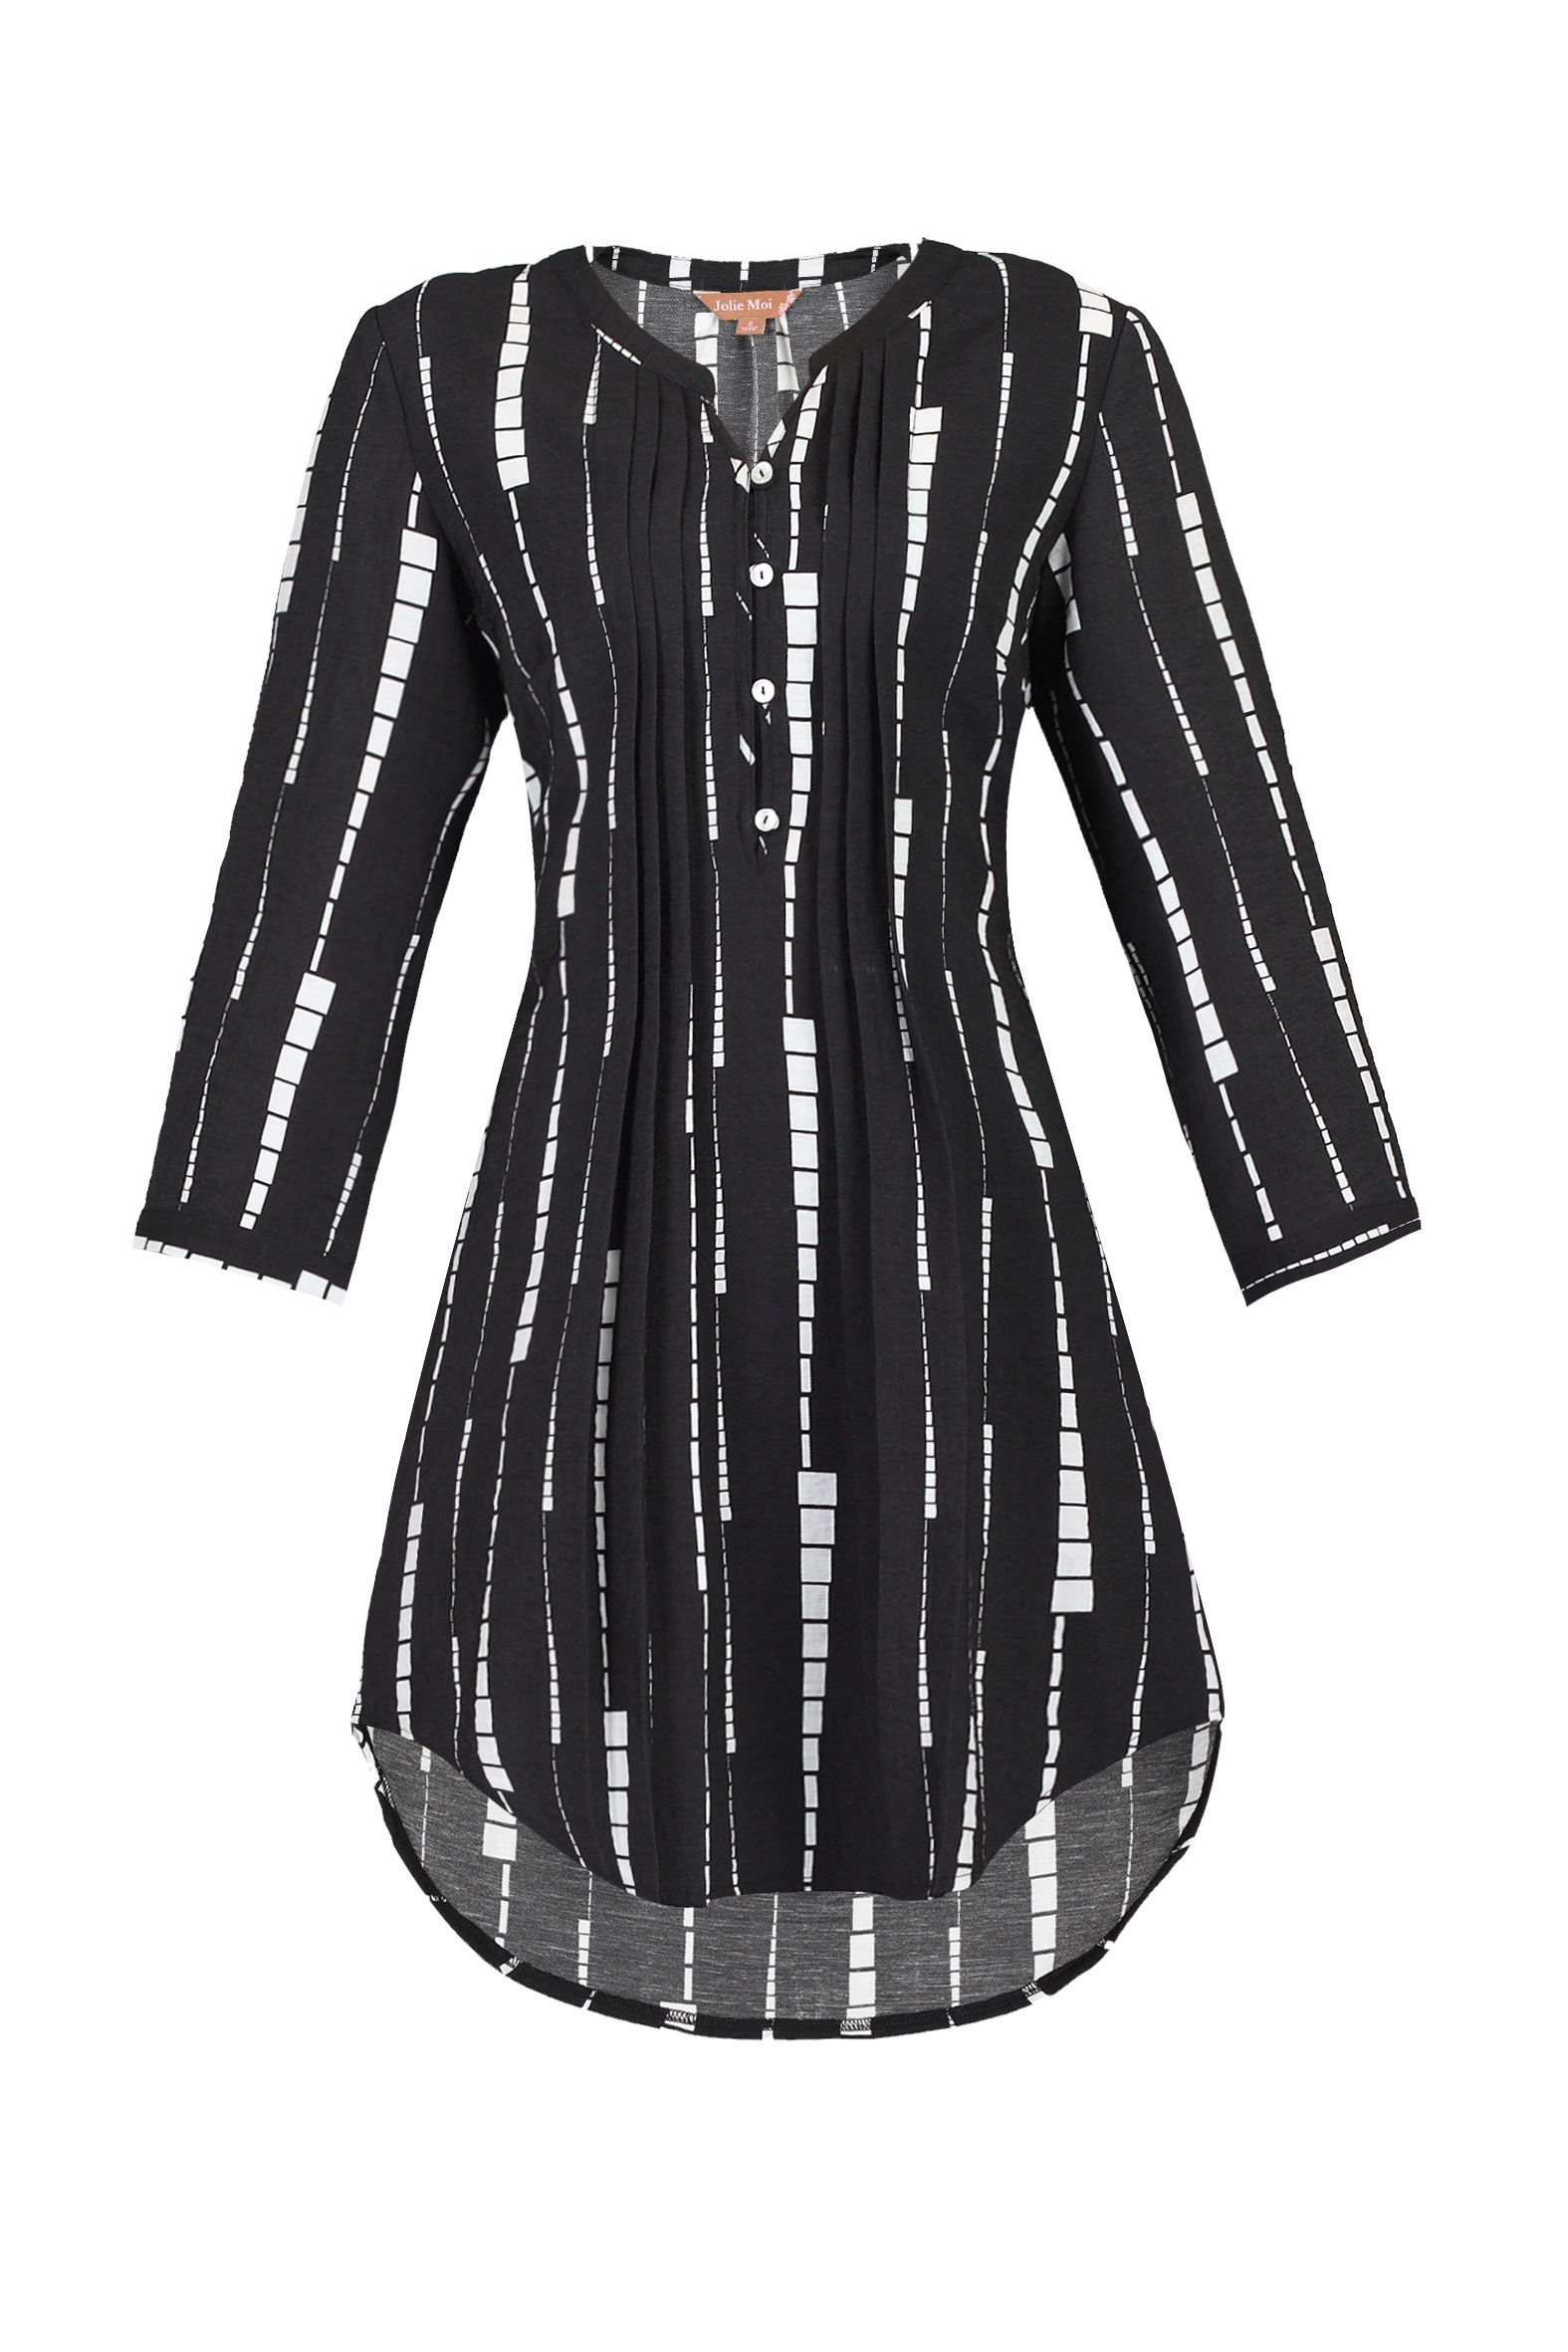 Jolie Moi Geo Print Button Front Tunic, Black